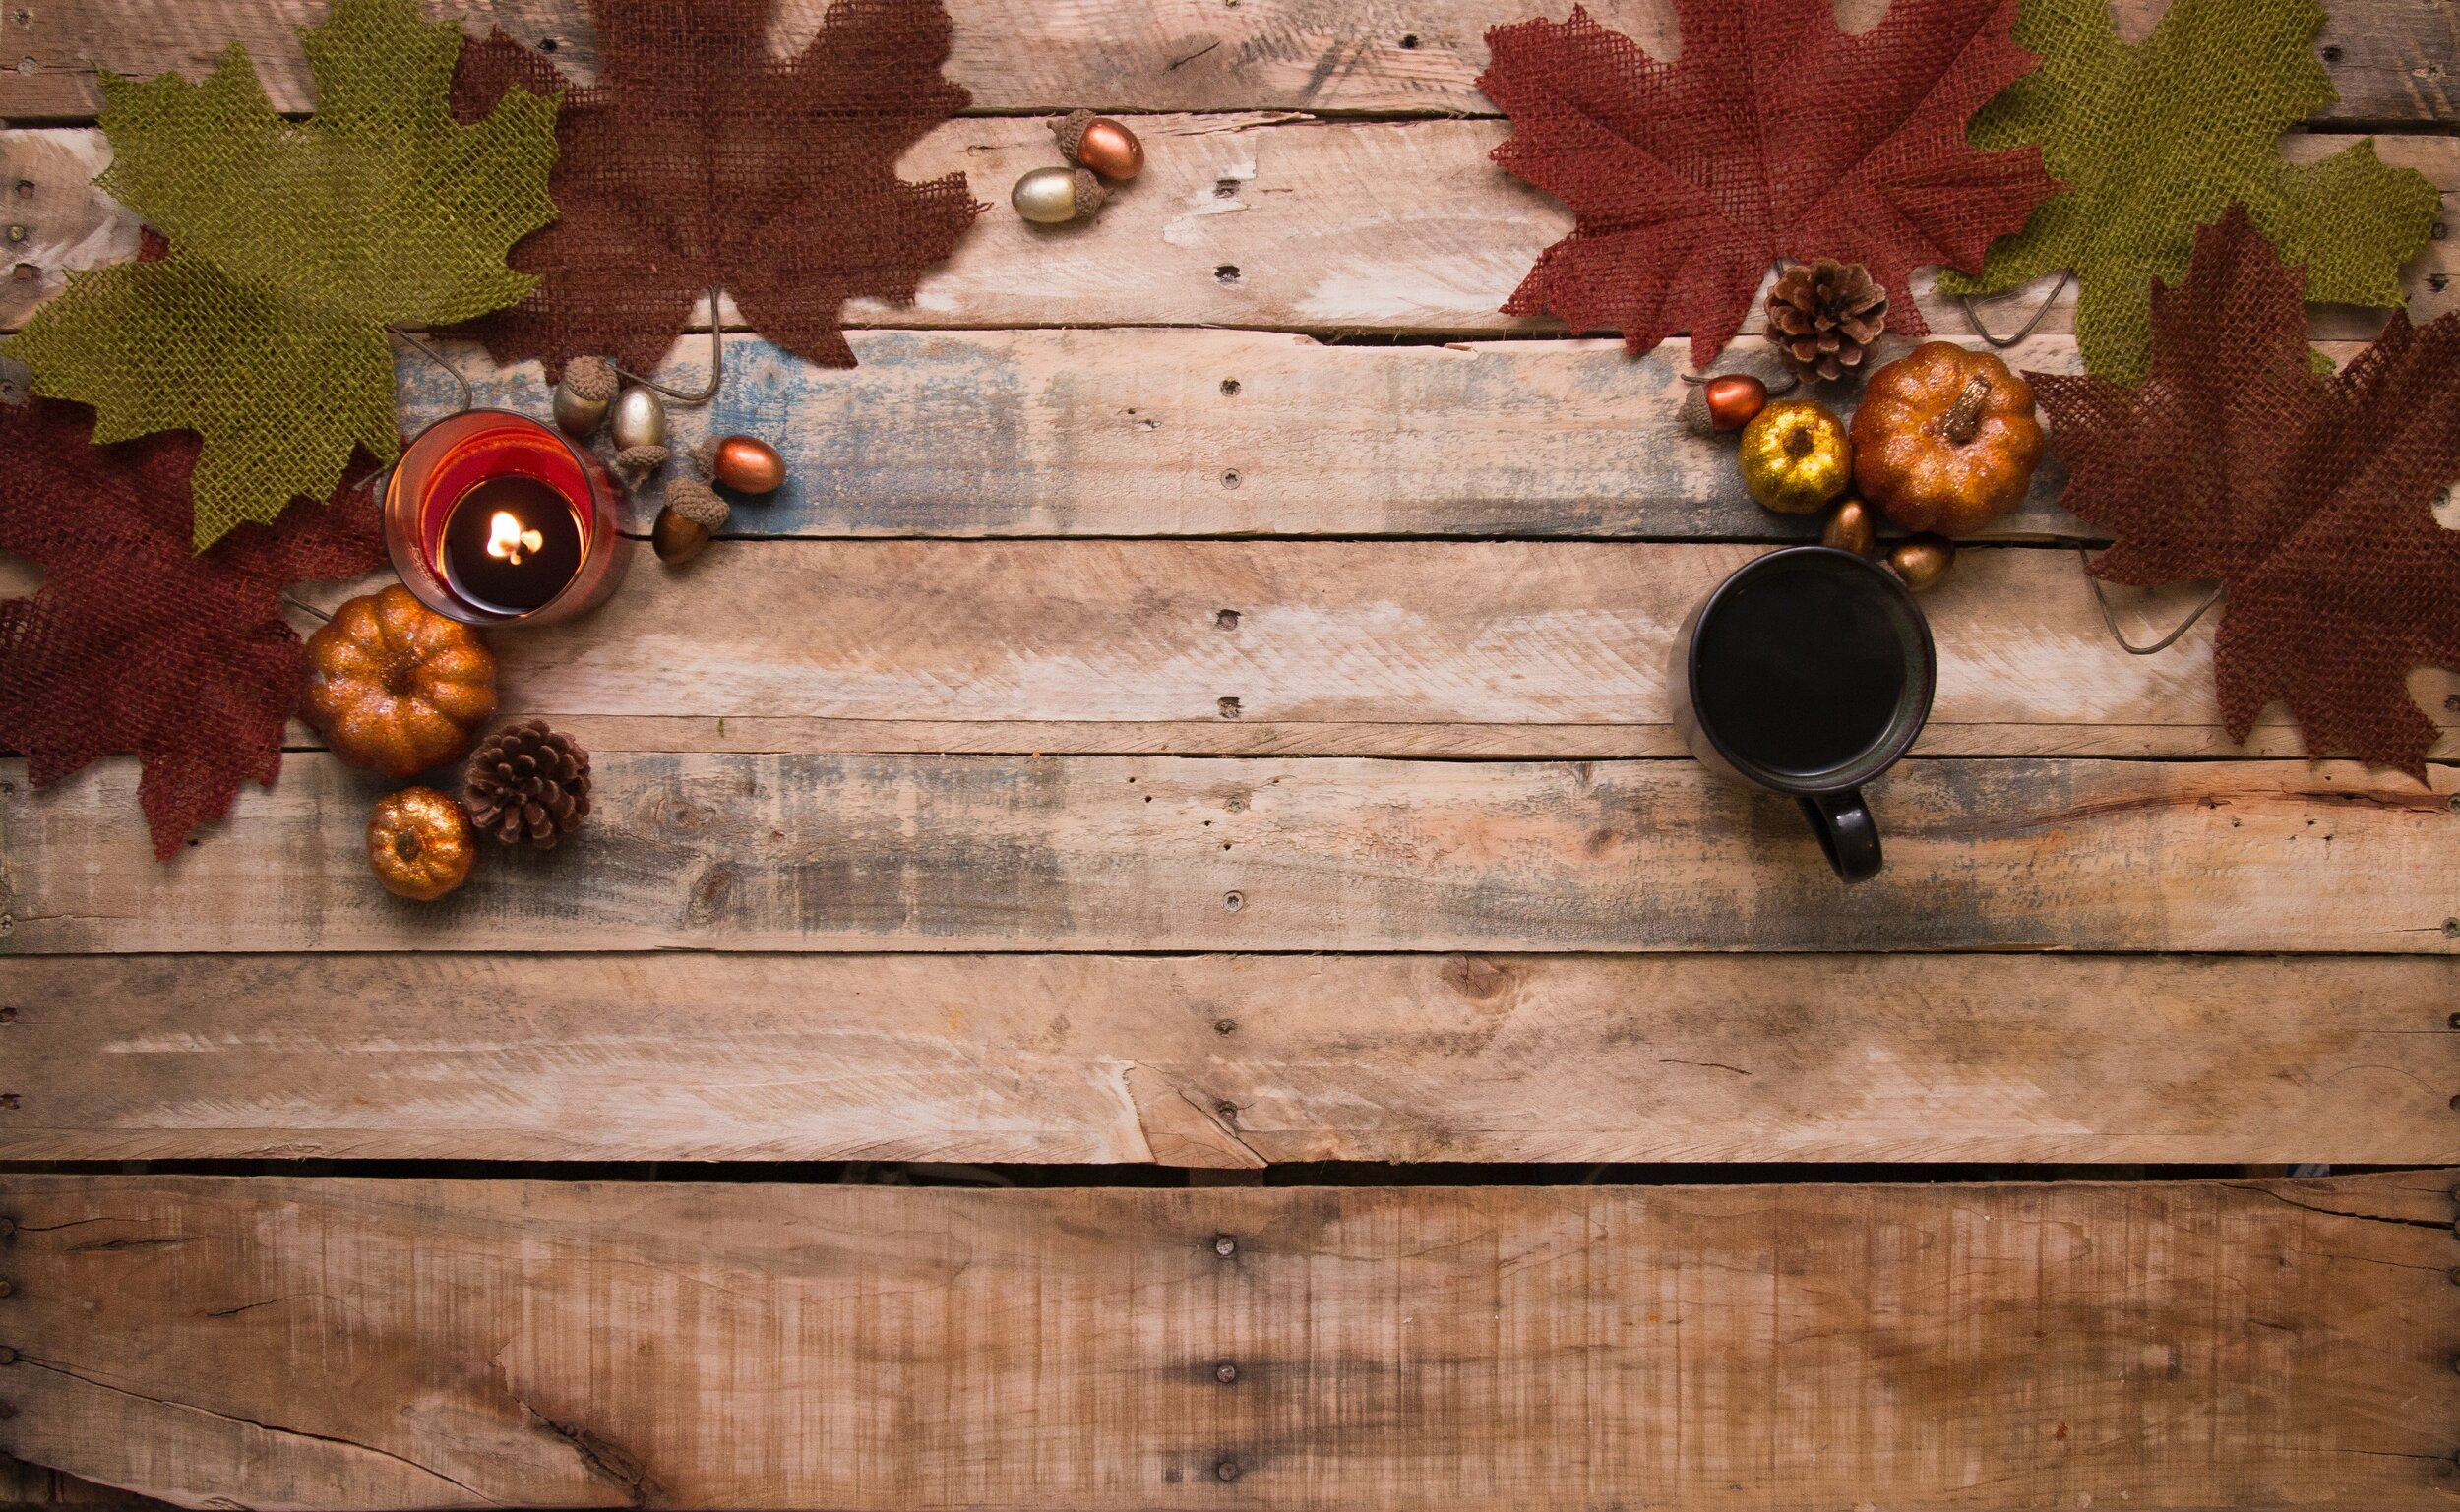 acorns-autumn-decoration-beverage-730286.jpg